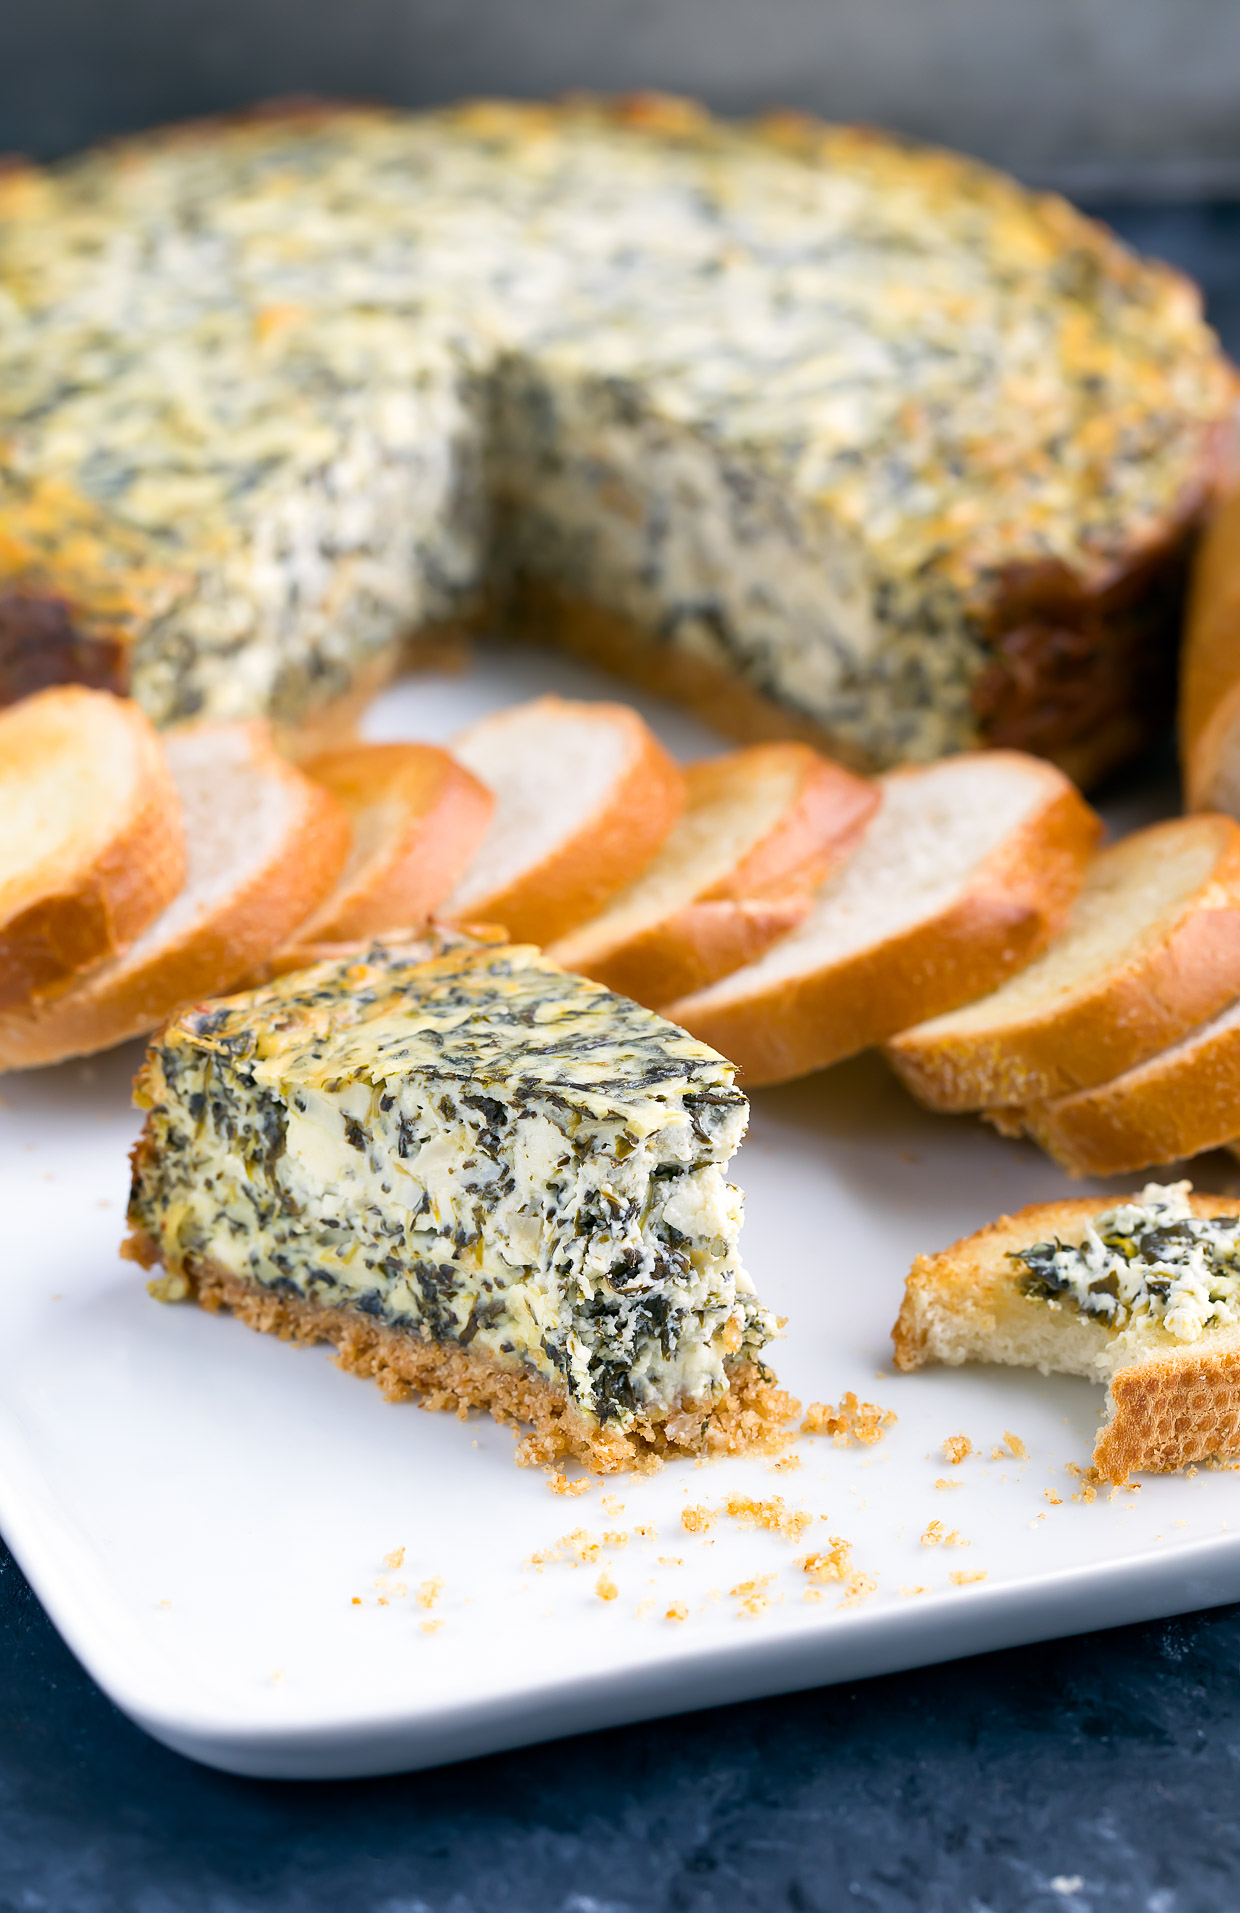 This Savory Spinach Artichoke Cheesecake is a fun and delicious party appetizer!